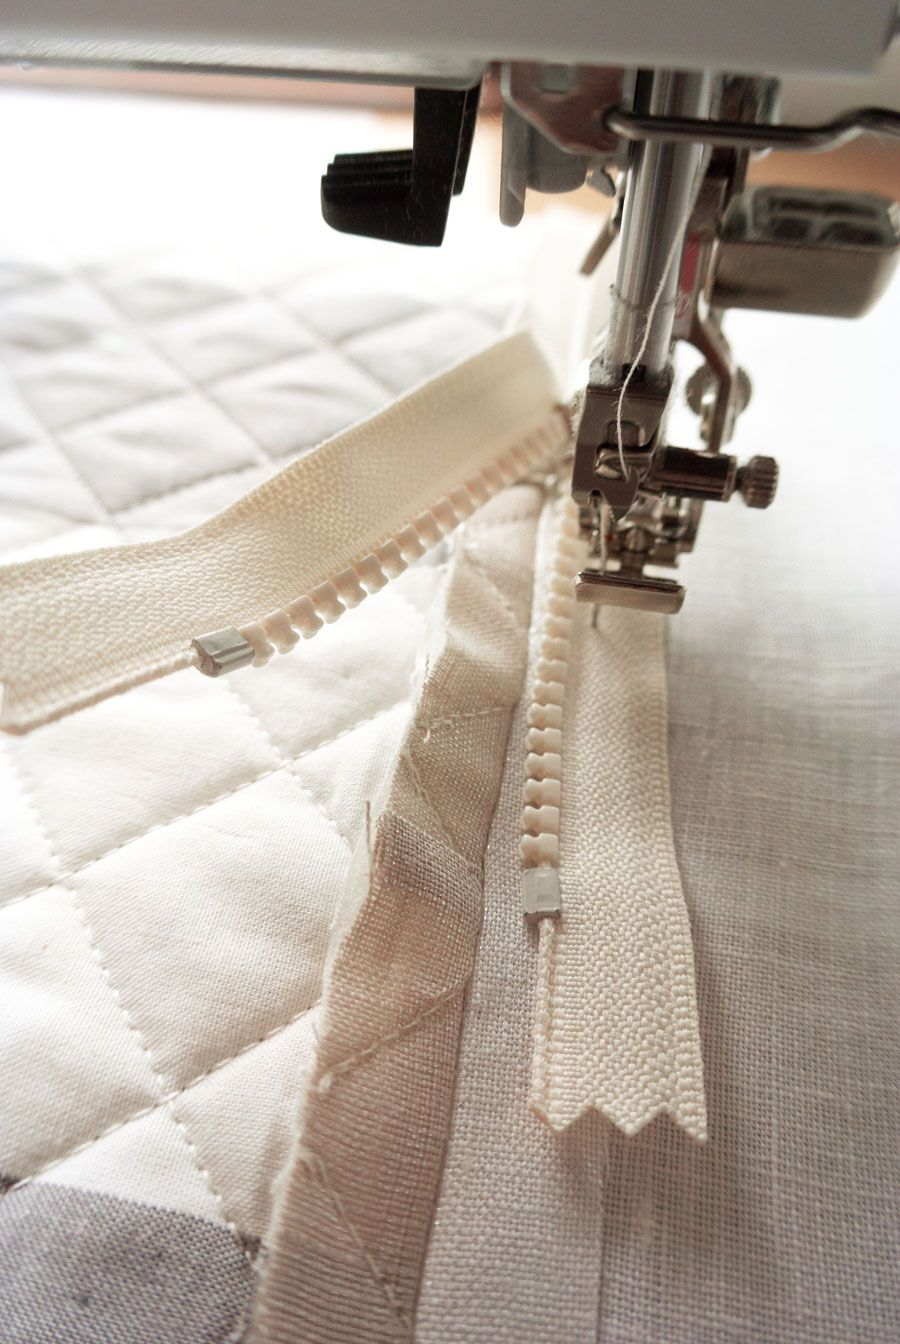 Sewing A Zipper In A Pillow.Make A Quilted Zipper Pillow Photo Tutorial Small Quilty